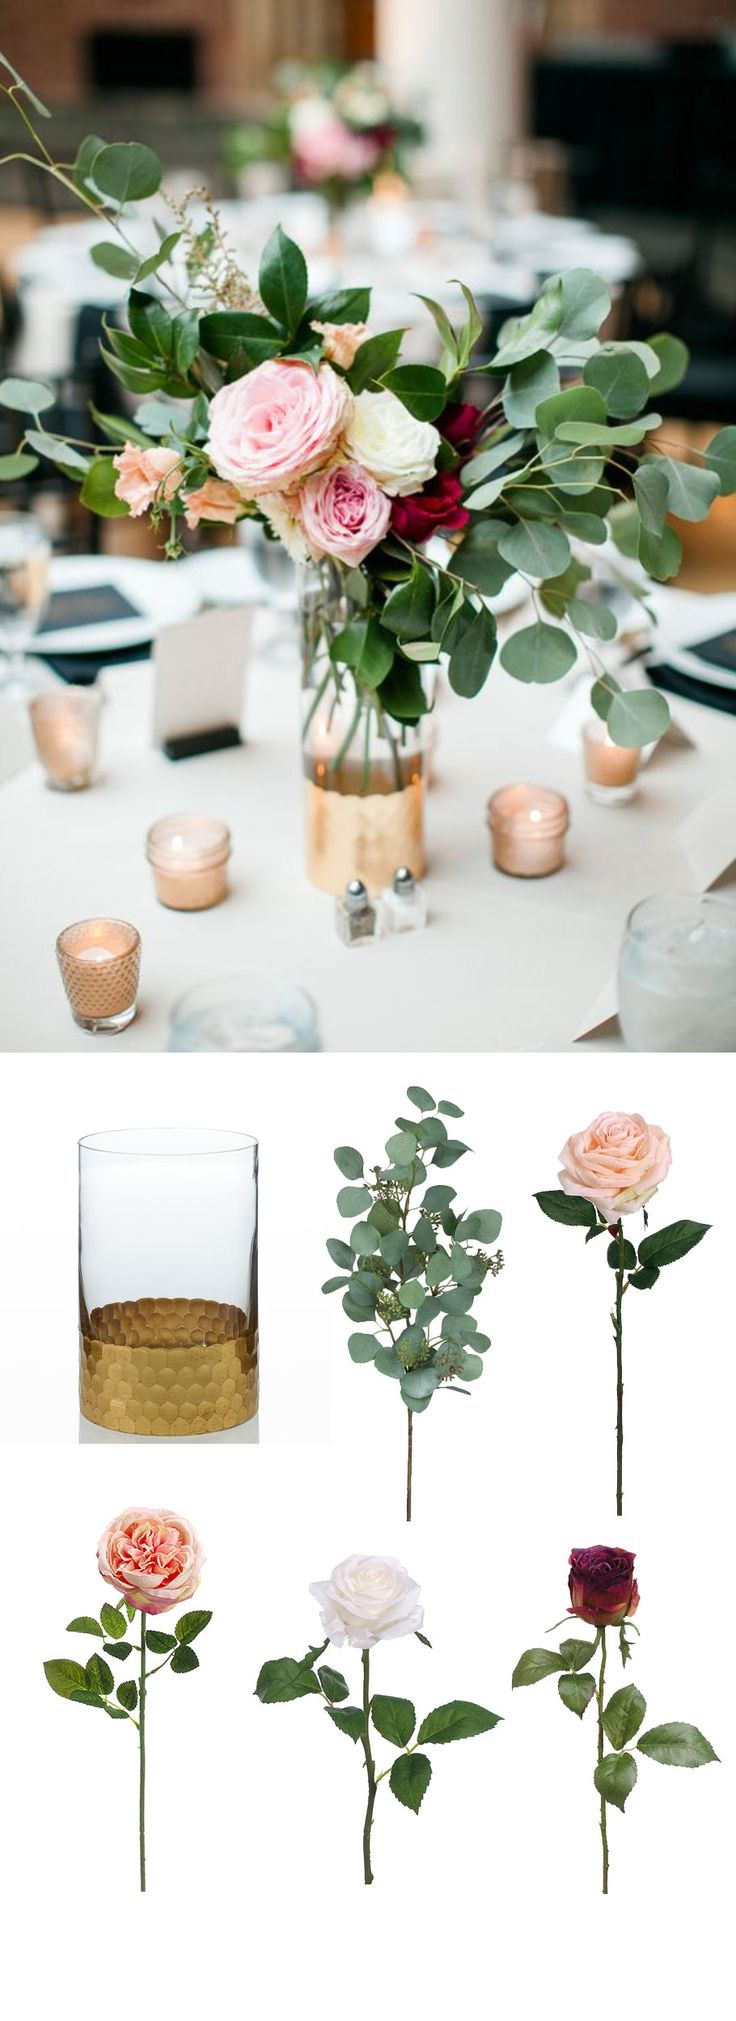 Best Romantic Wedding Decor Ideas On Pinterest Wedding Tent - Beautiful flowers candles centerpieces romanticize table decoratio